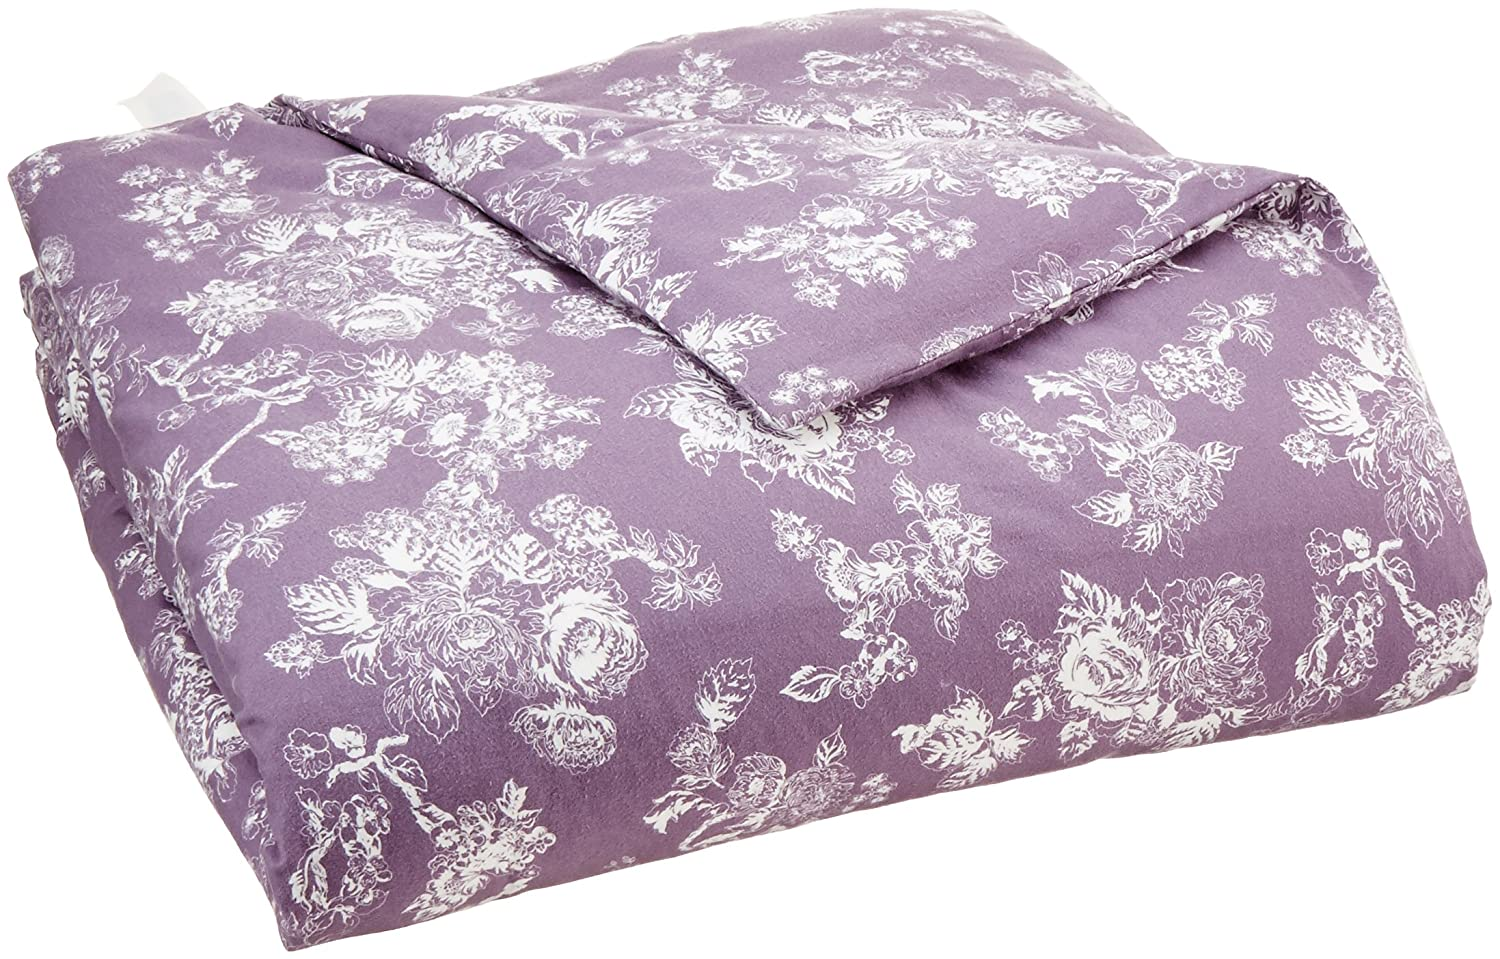 AmazonBasics Printed Lightweight Flannel Duvet Cover - Full/Queen, Floral Lavender